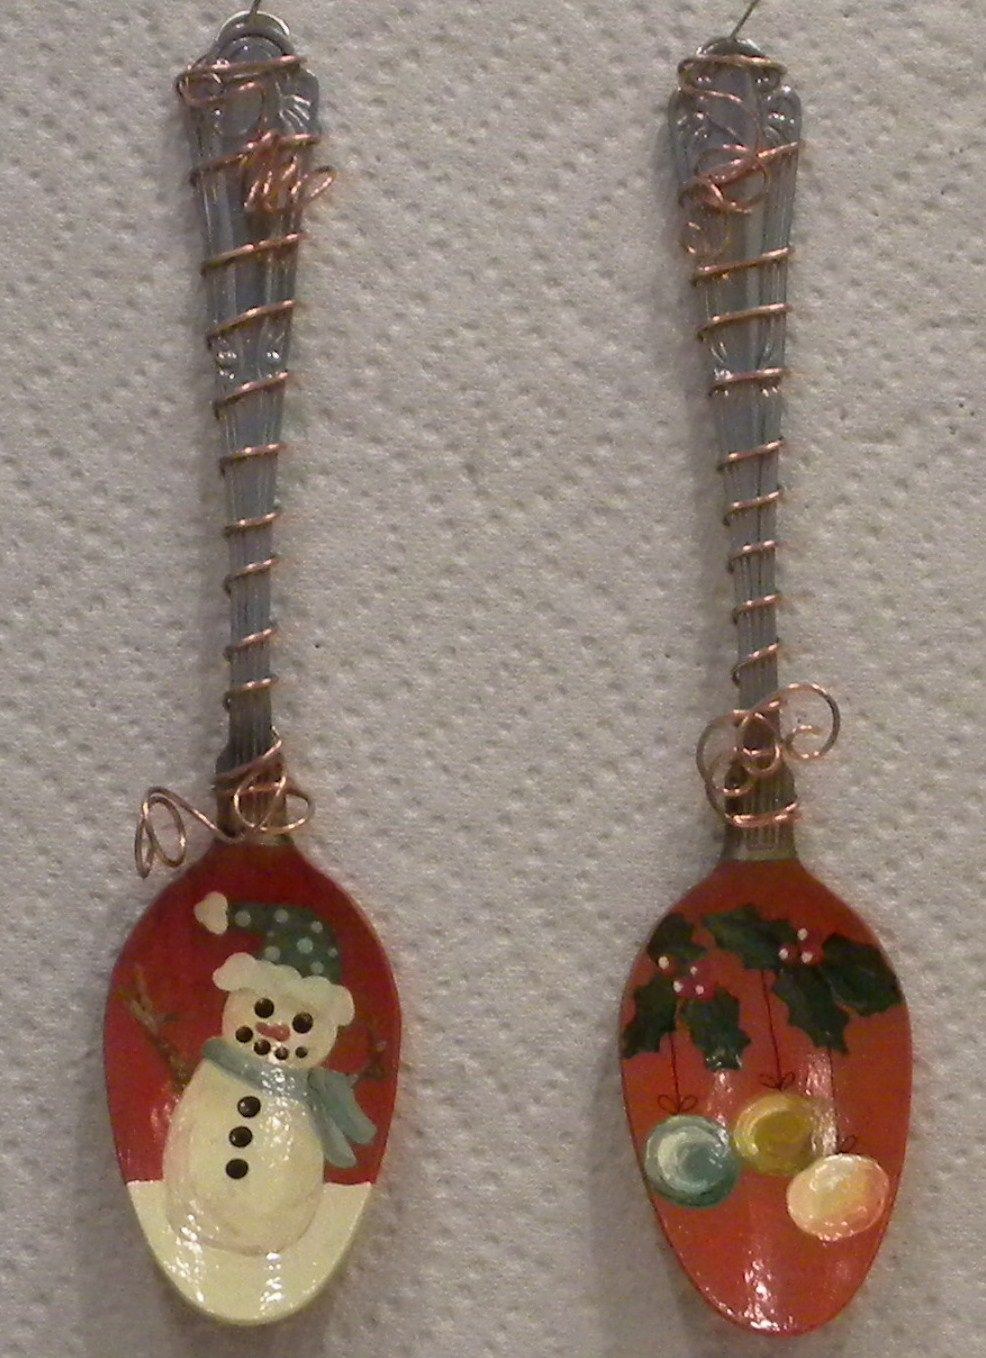 Image detail for -DY101-Ornament+wired+spoons_snowman_ornaments_2010.JPG